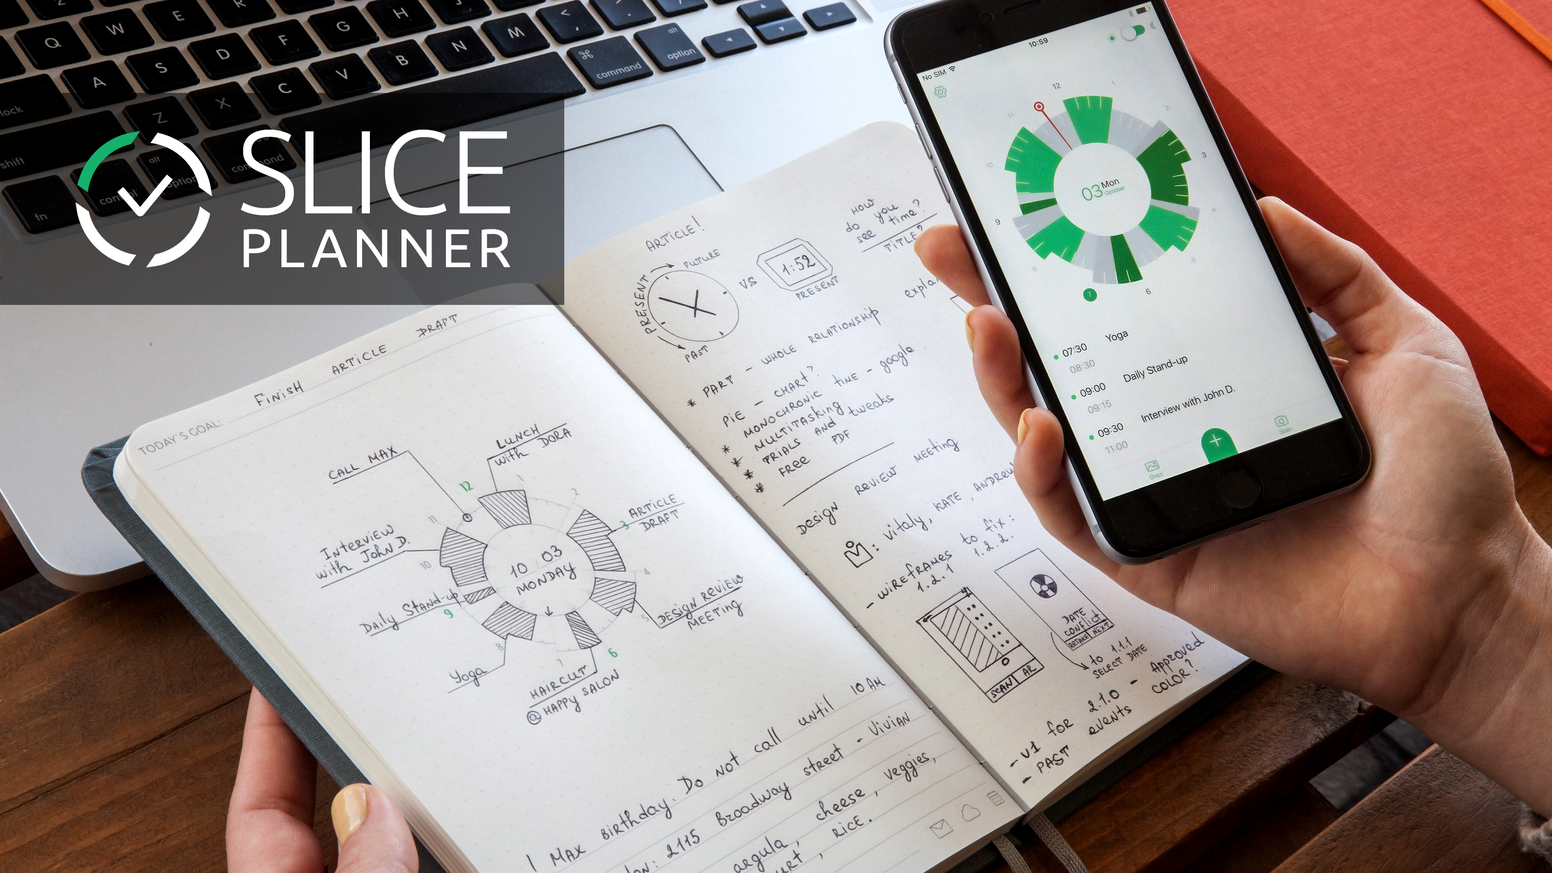 Master your time with a hybrid paper-digital planning system powered by augmented reality.